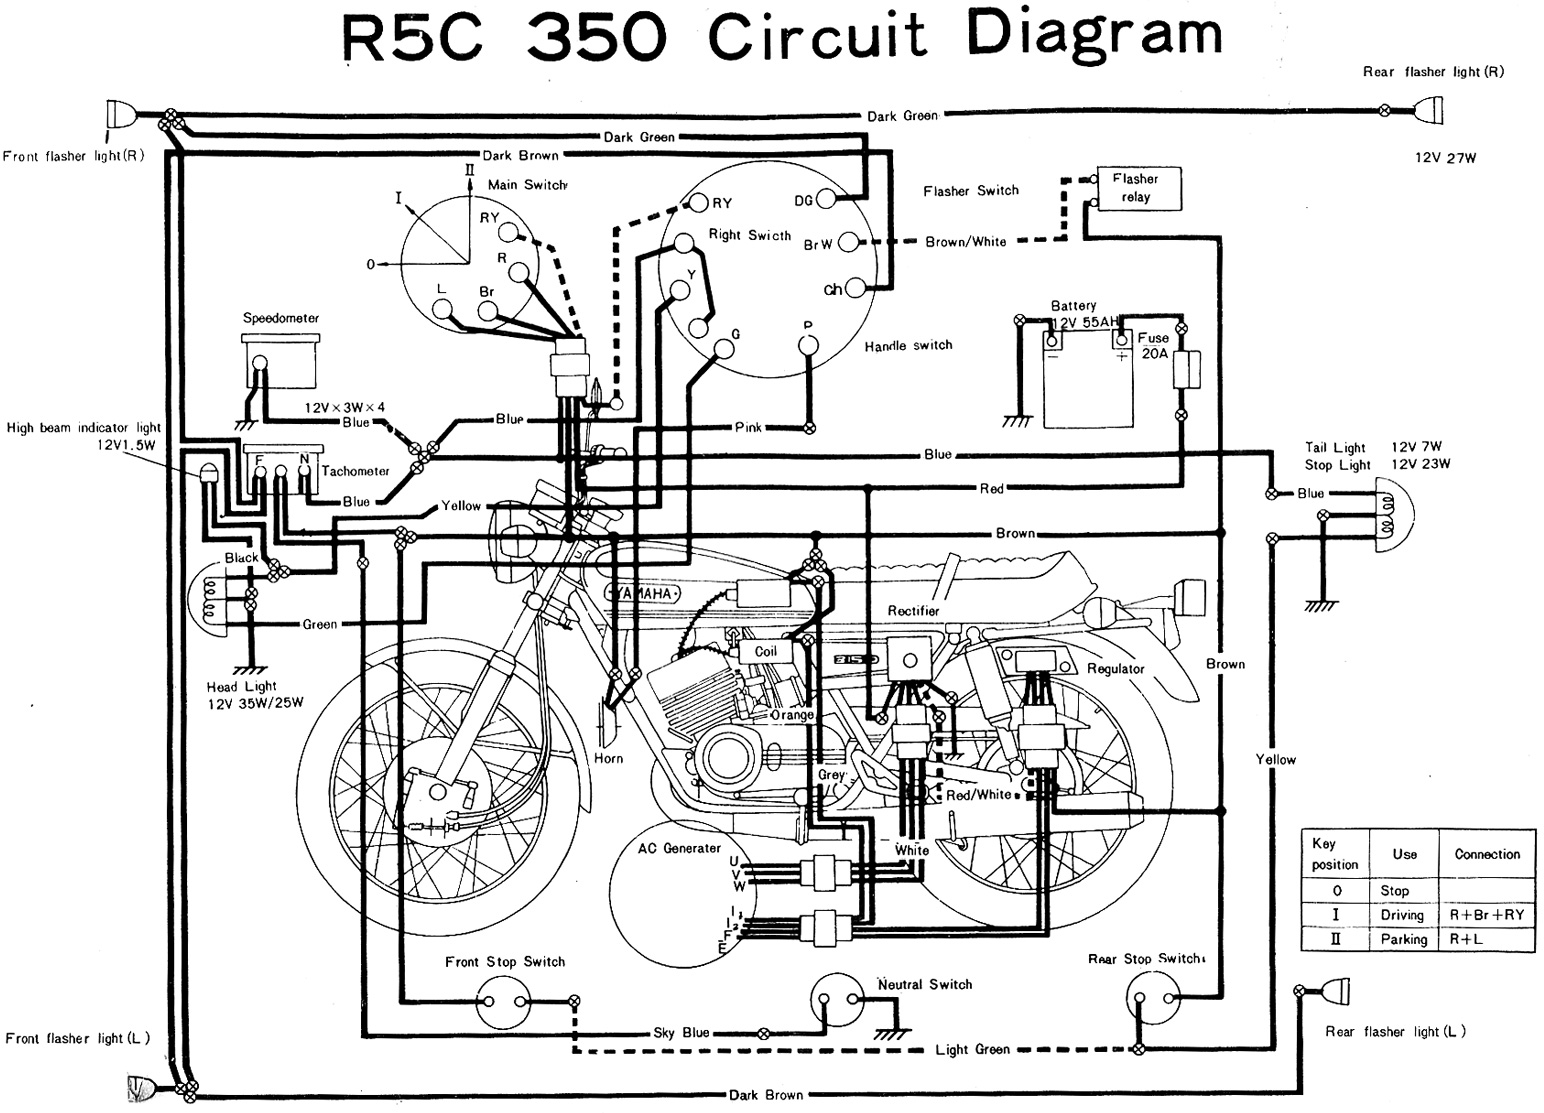 Yamaha RD350 R5C Wiring Diagram – Evan Fell Motorcycle Works on john deere gator wiring-diagram, jd la120 wiring-diagram, john deere l125 manual, john deere d125 wiring-diagram, john deere z225 wiring-diagram, john deere 445 wiring-diagram, john deere 165 wiring-diagram, john deere l102 wiring-diagram, john deere l118 wiring-diagram, john deere 425 wiring-diagram, john deere m wiring-diagram, john deere lx255 wiring-diagram, john deere l110 wiring-diagram, john deere stx38 wiring-diagram, john deere 112 wiring-diagram, john deere rx75 wiring-diagram,